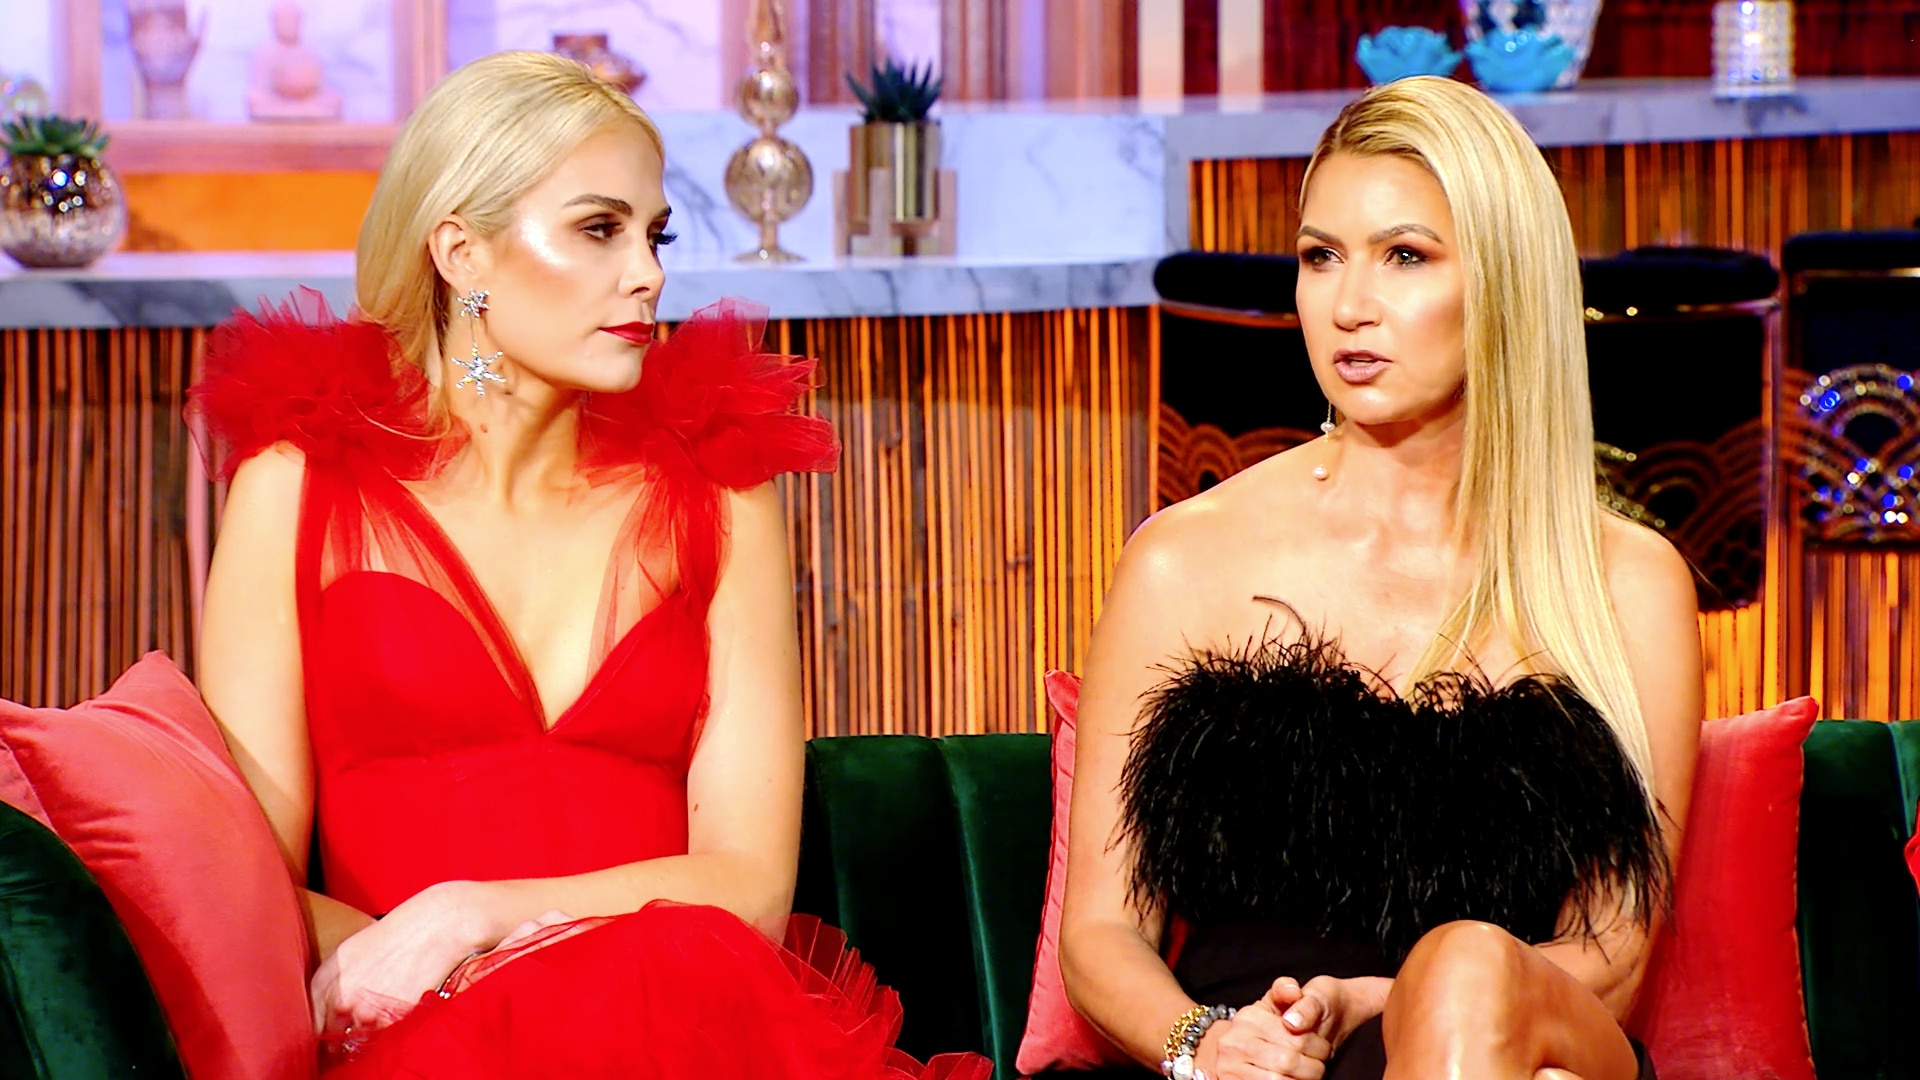 Watch The Real Housewives of Dallas Excerpt: So Was There